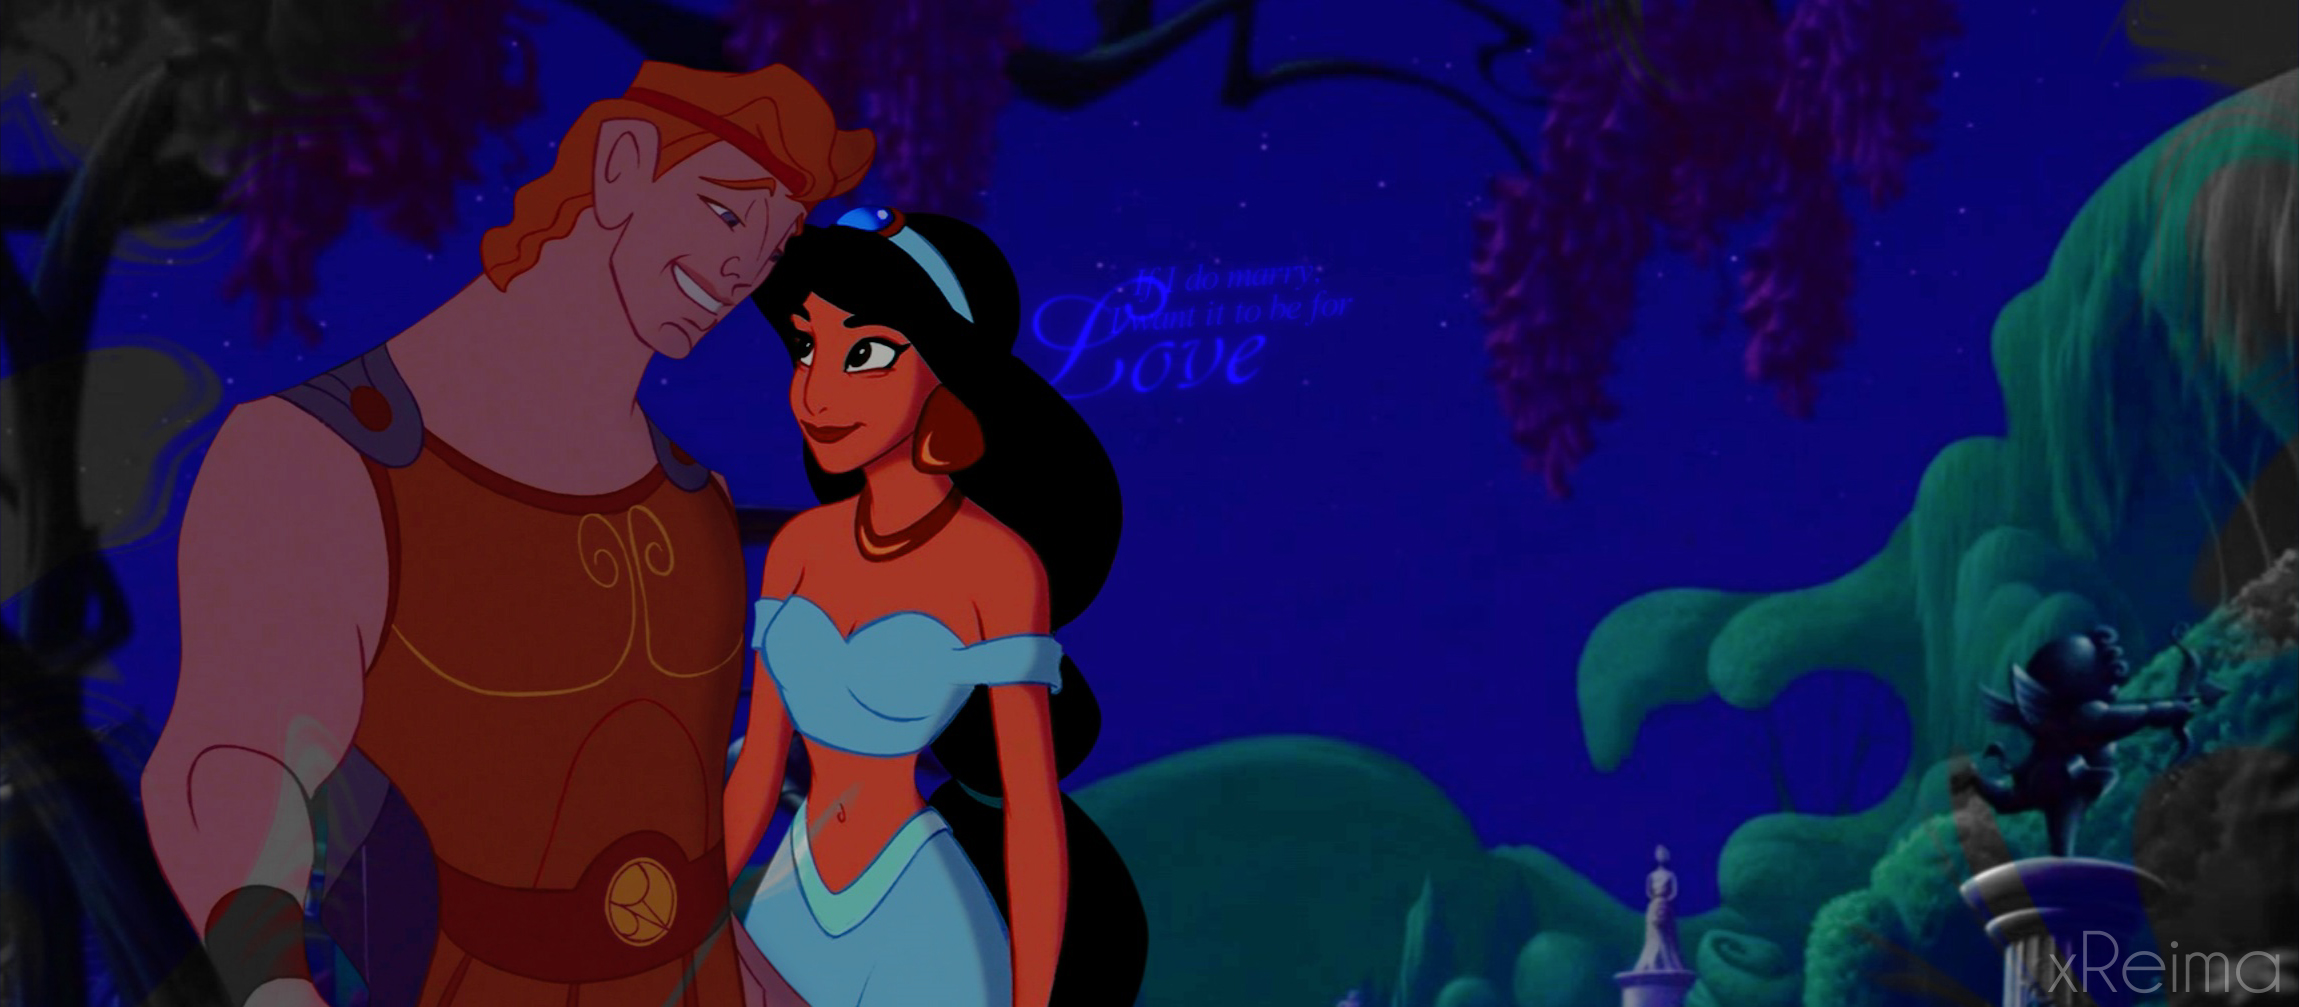 jasmin and Hercules